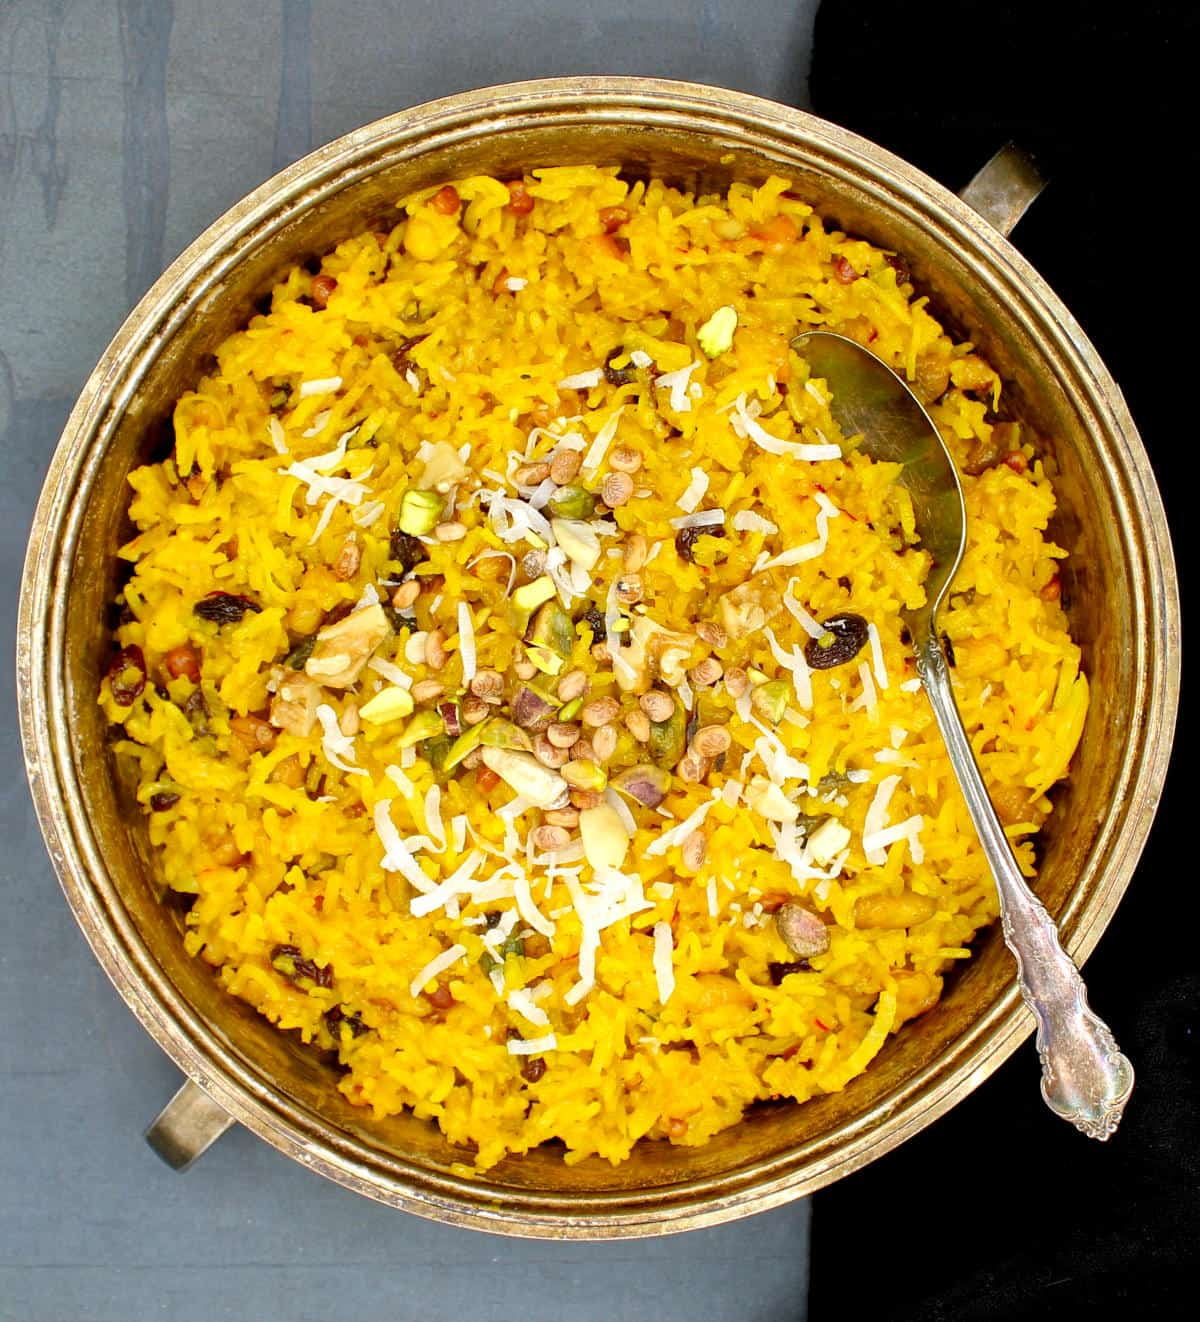 Photo of vegan zarda in a silver serving dish with a spoon.